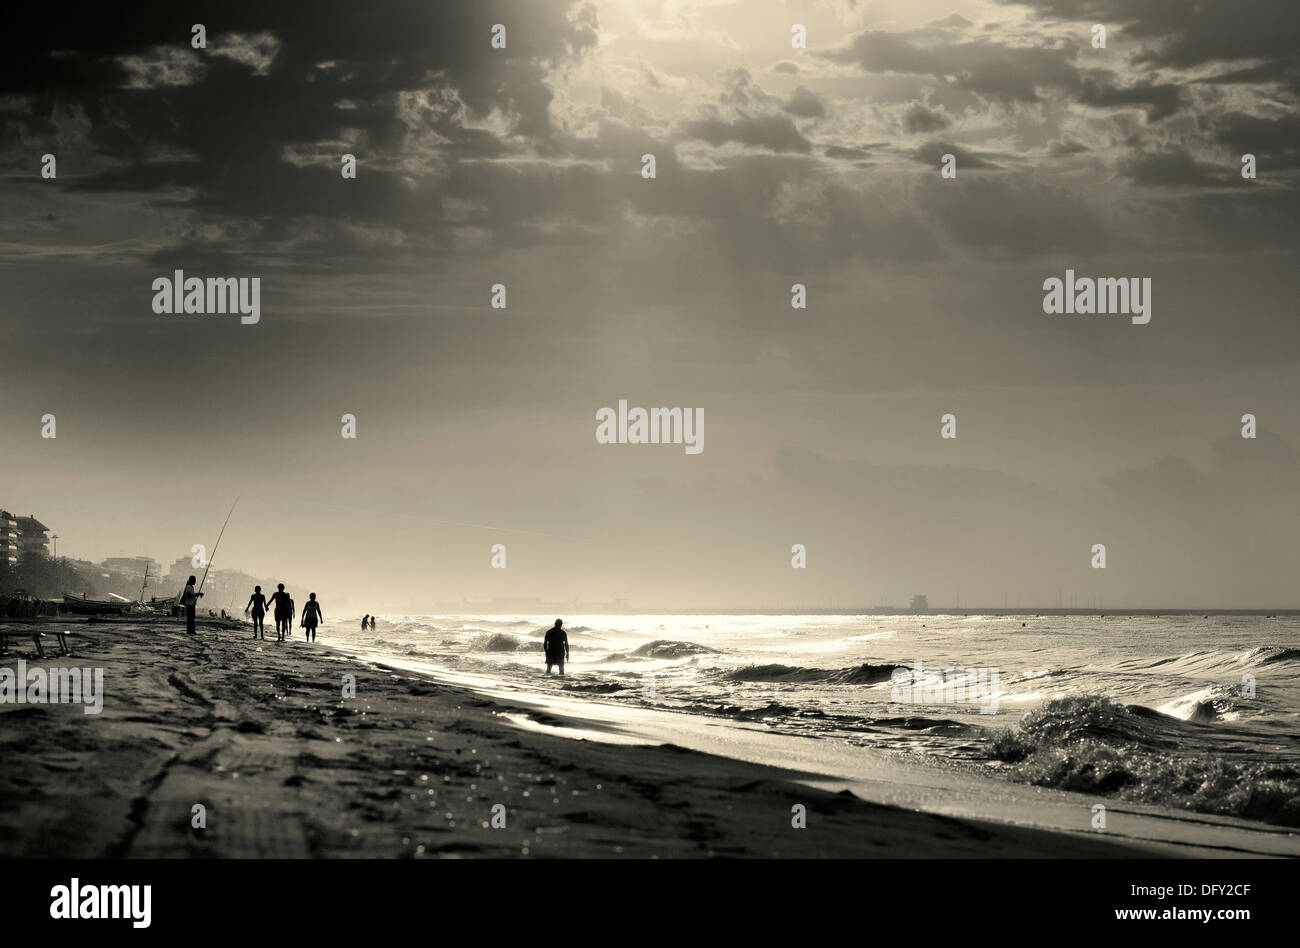 People walking along the sea at dawn Mediterranean Sea - Stock Image